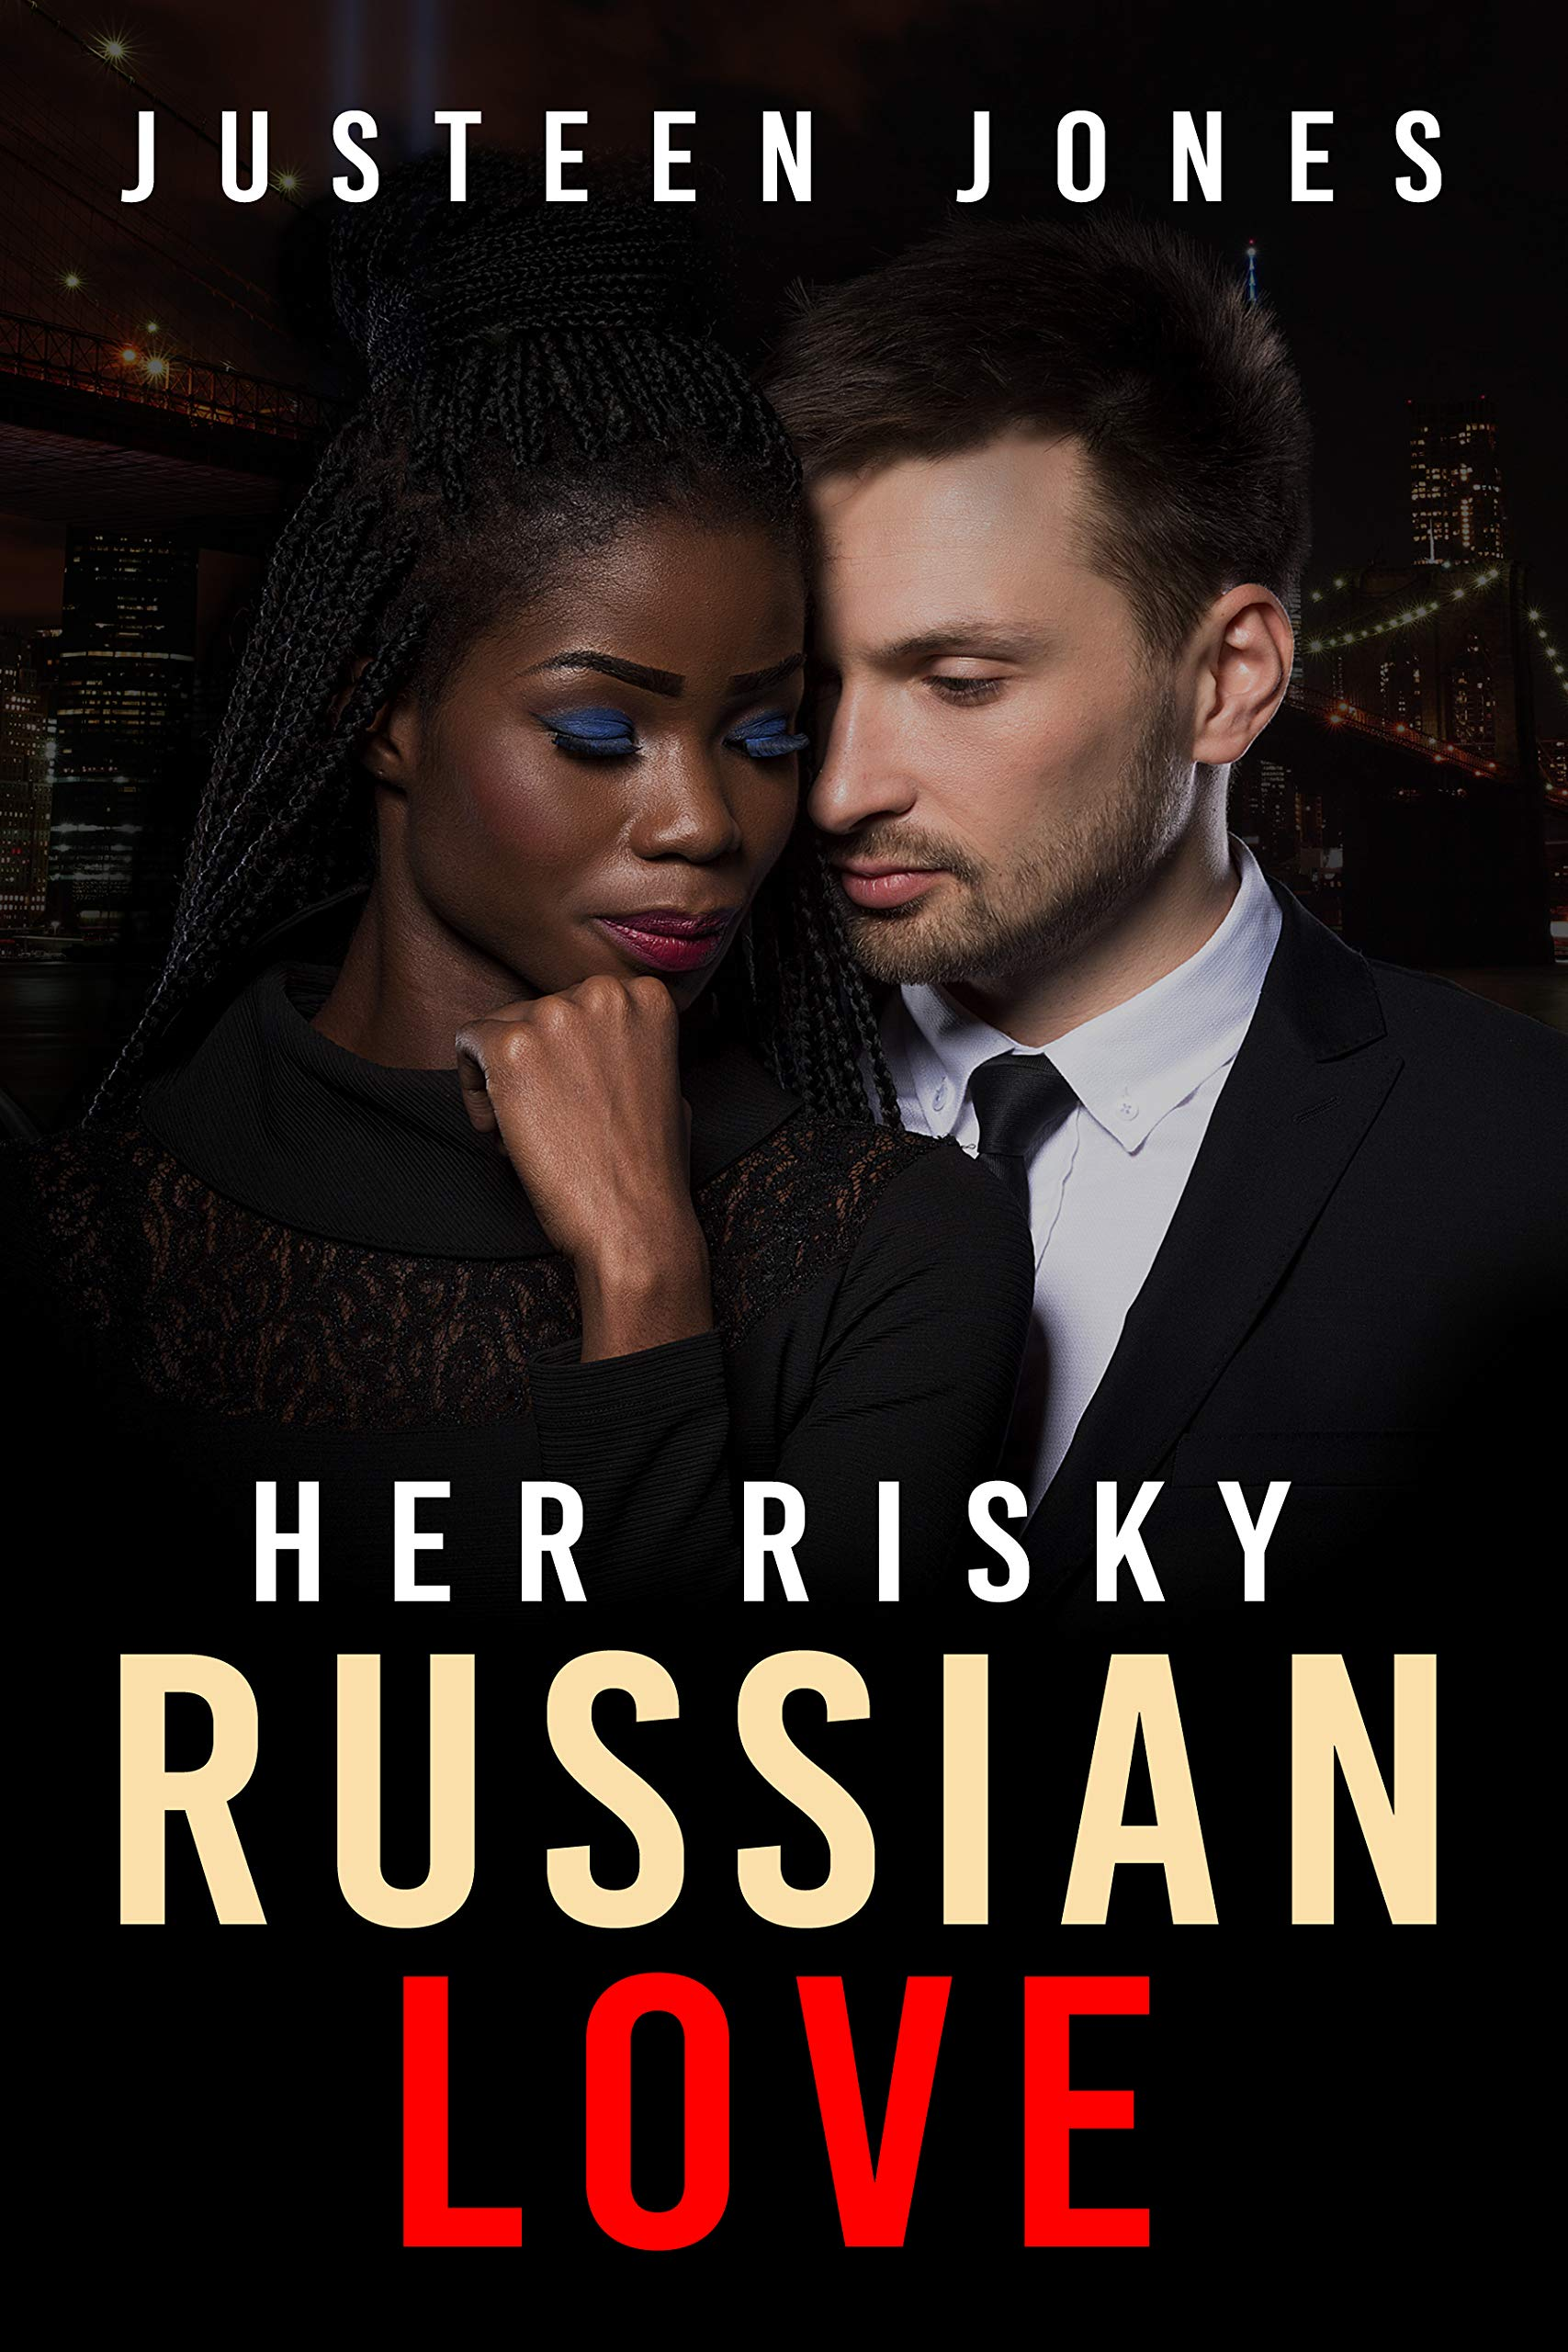 Her Risky Russian Love